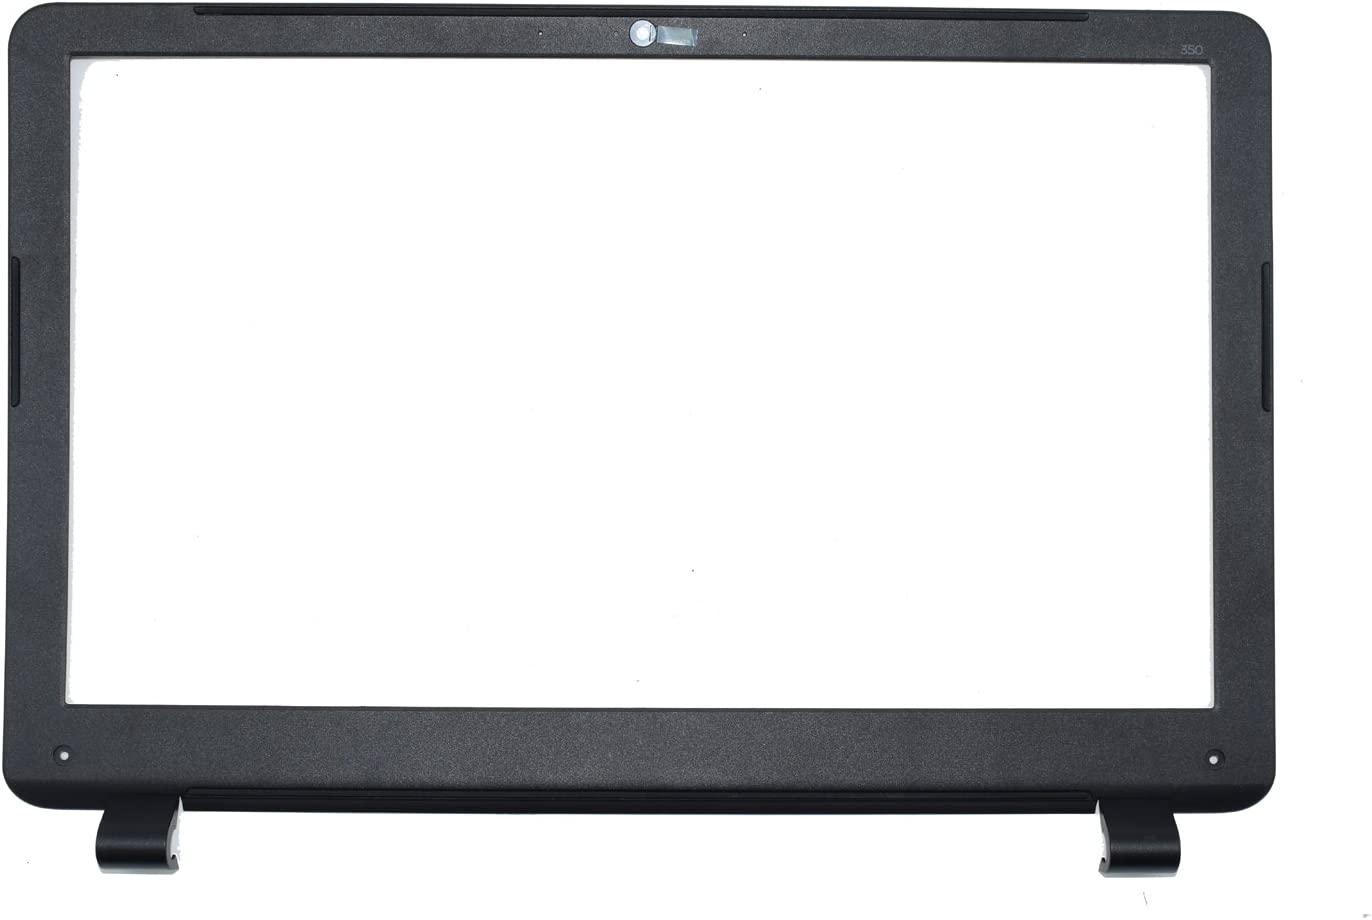 New for HP 350 G1 LCD Rear Cover Screen Lid Top Shell /& Front Frame LCD Bezel with Camera Hole 758057-001 758055-001